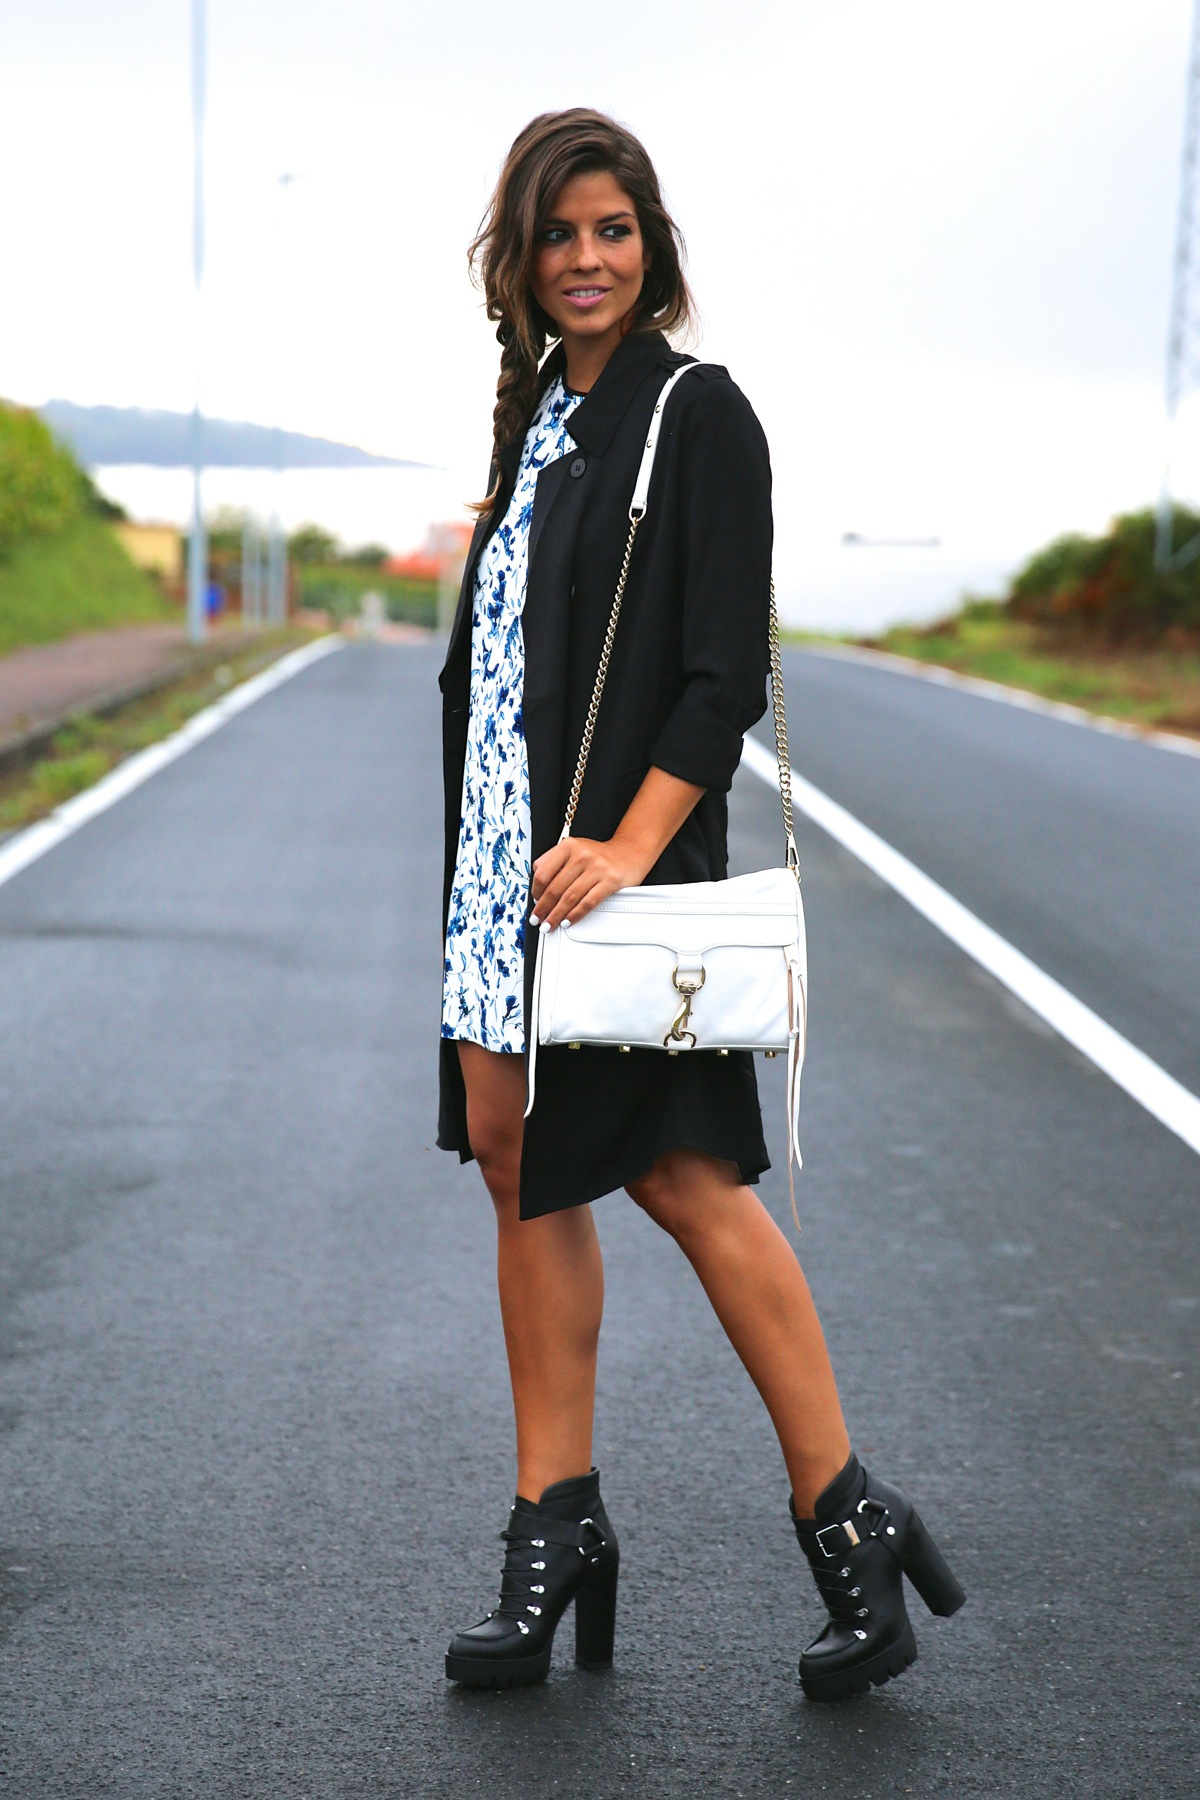 trendy_taste-look-outfit-street_style-ootd-blog-blogger-fashion_spain-moda_españa-combat_boots-botas_rock-parka-kimono-bolso_blanco-white_bag-galicia-vestido_flores-flower_print-dress-14